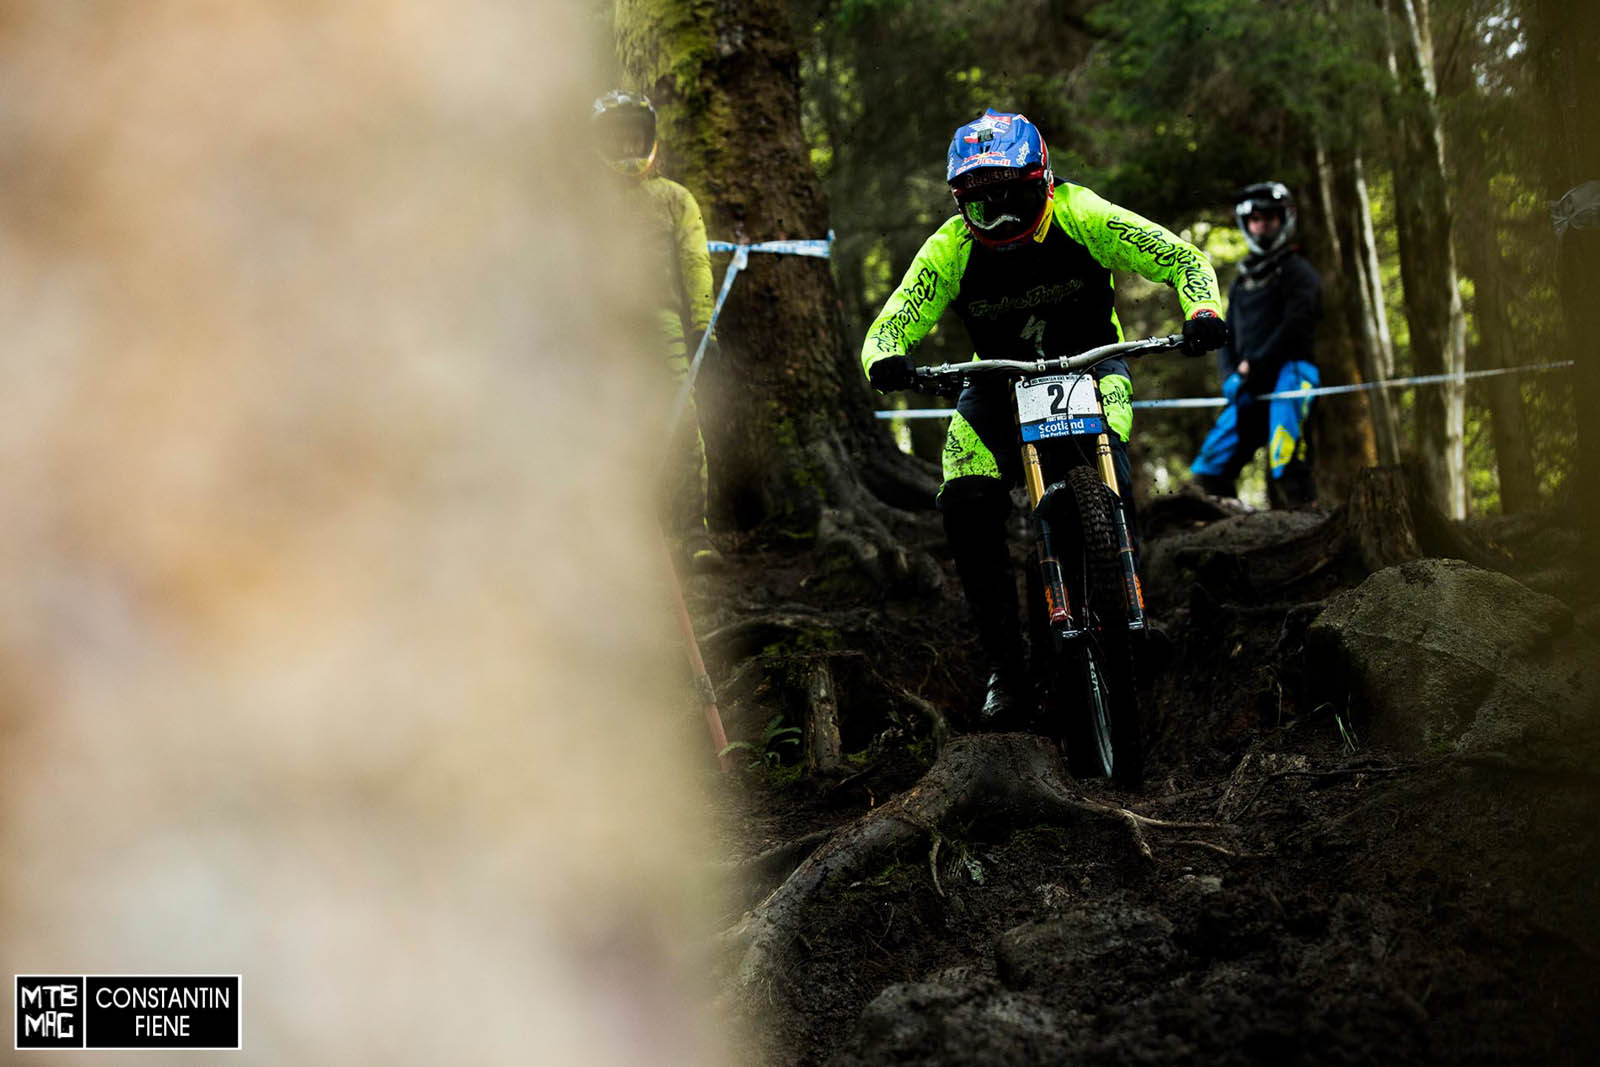 Aaron Gwin on the inside line before the Road Gap